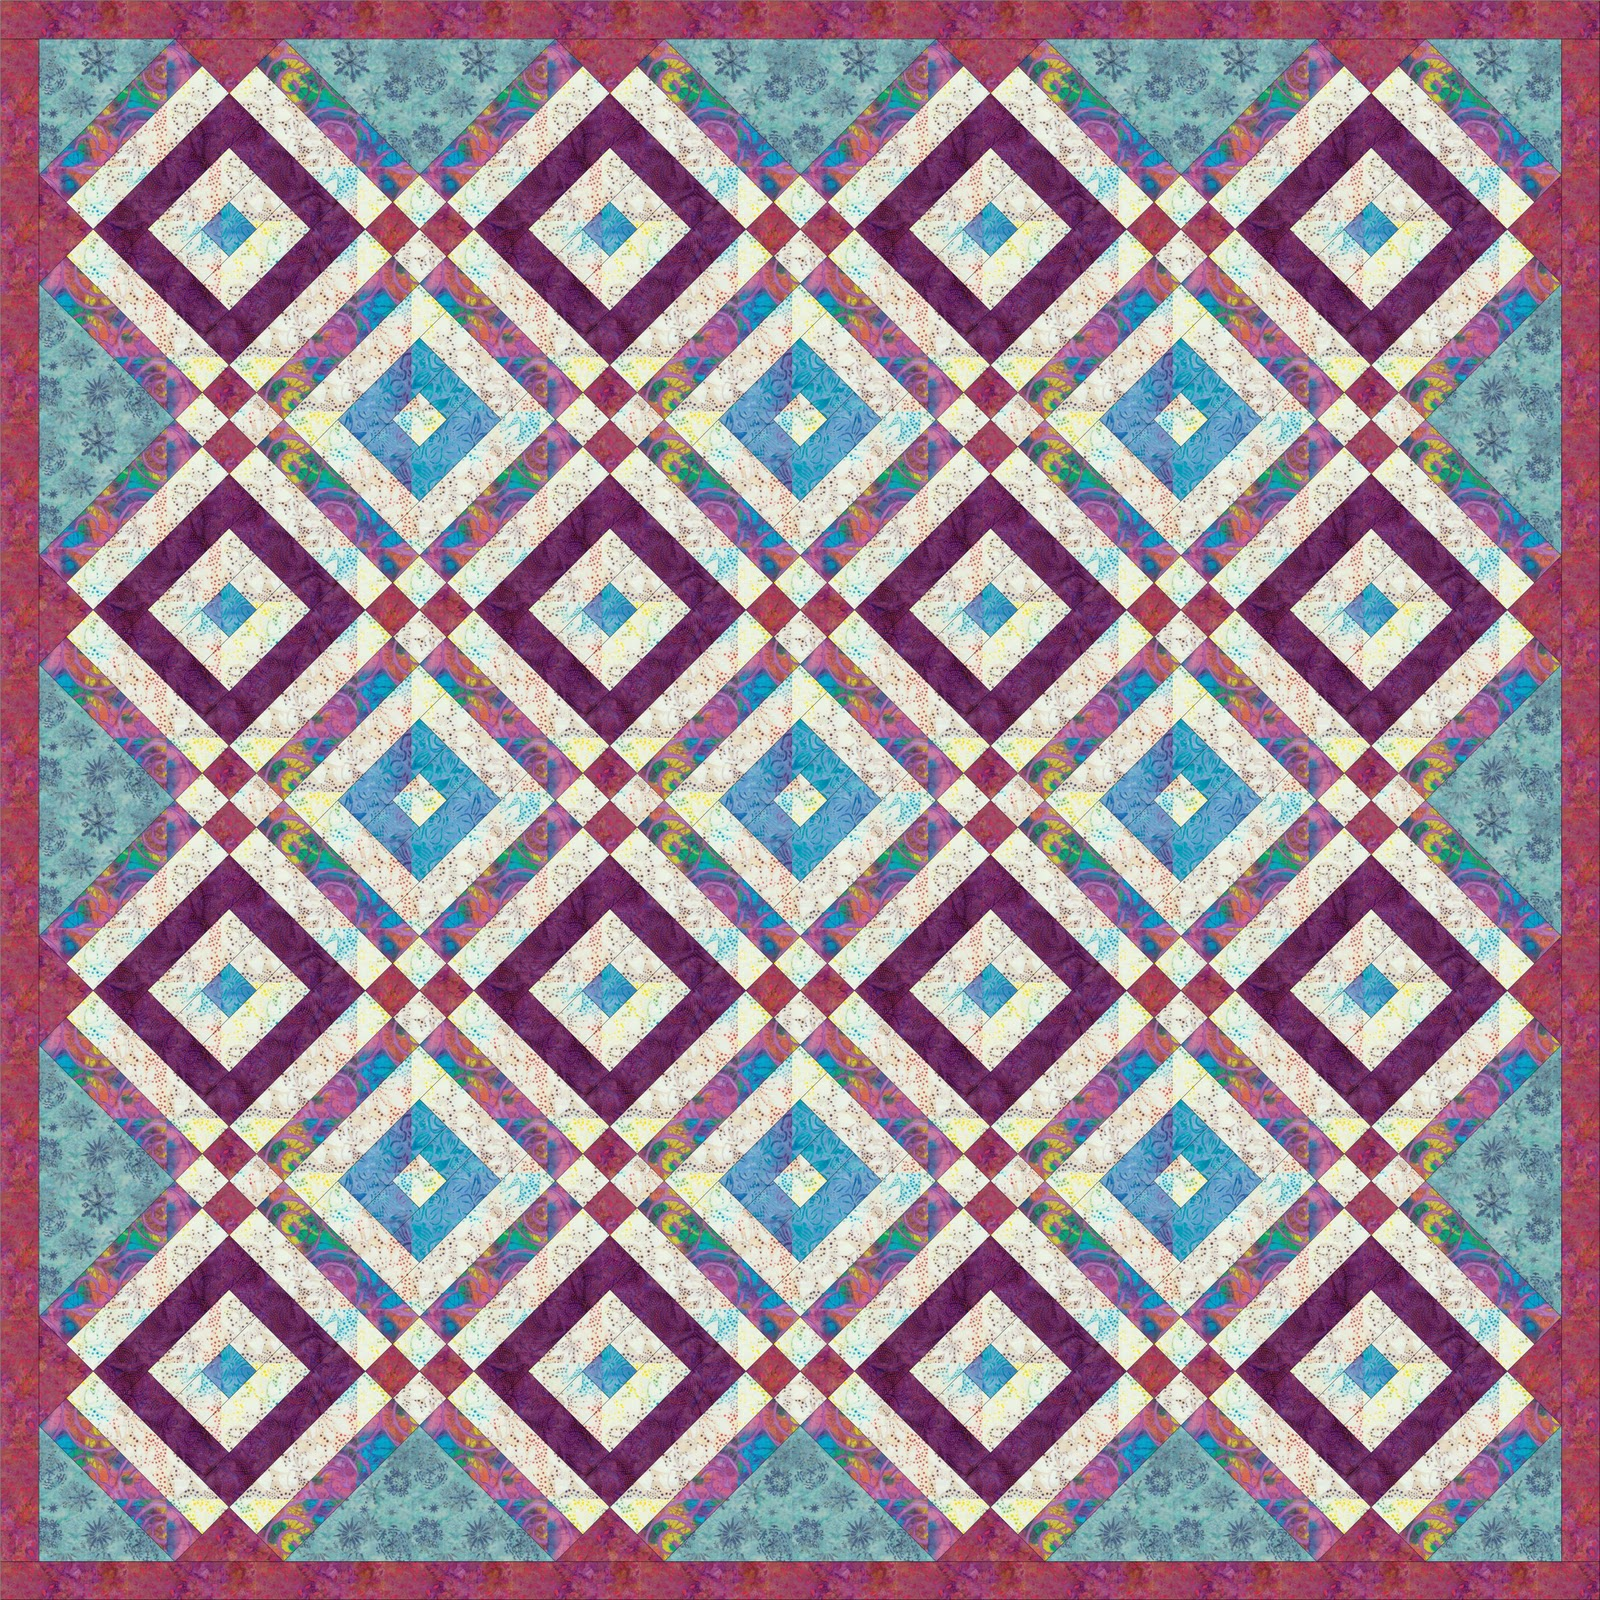 The Casual Quilter: January 2011